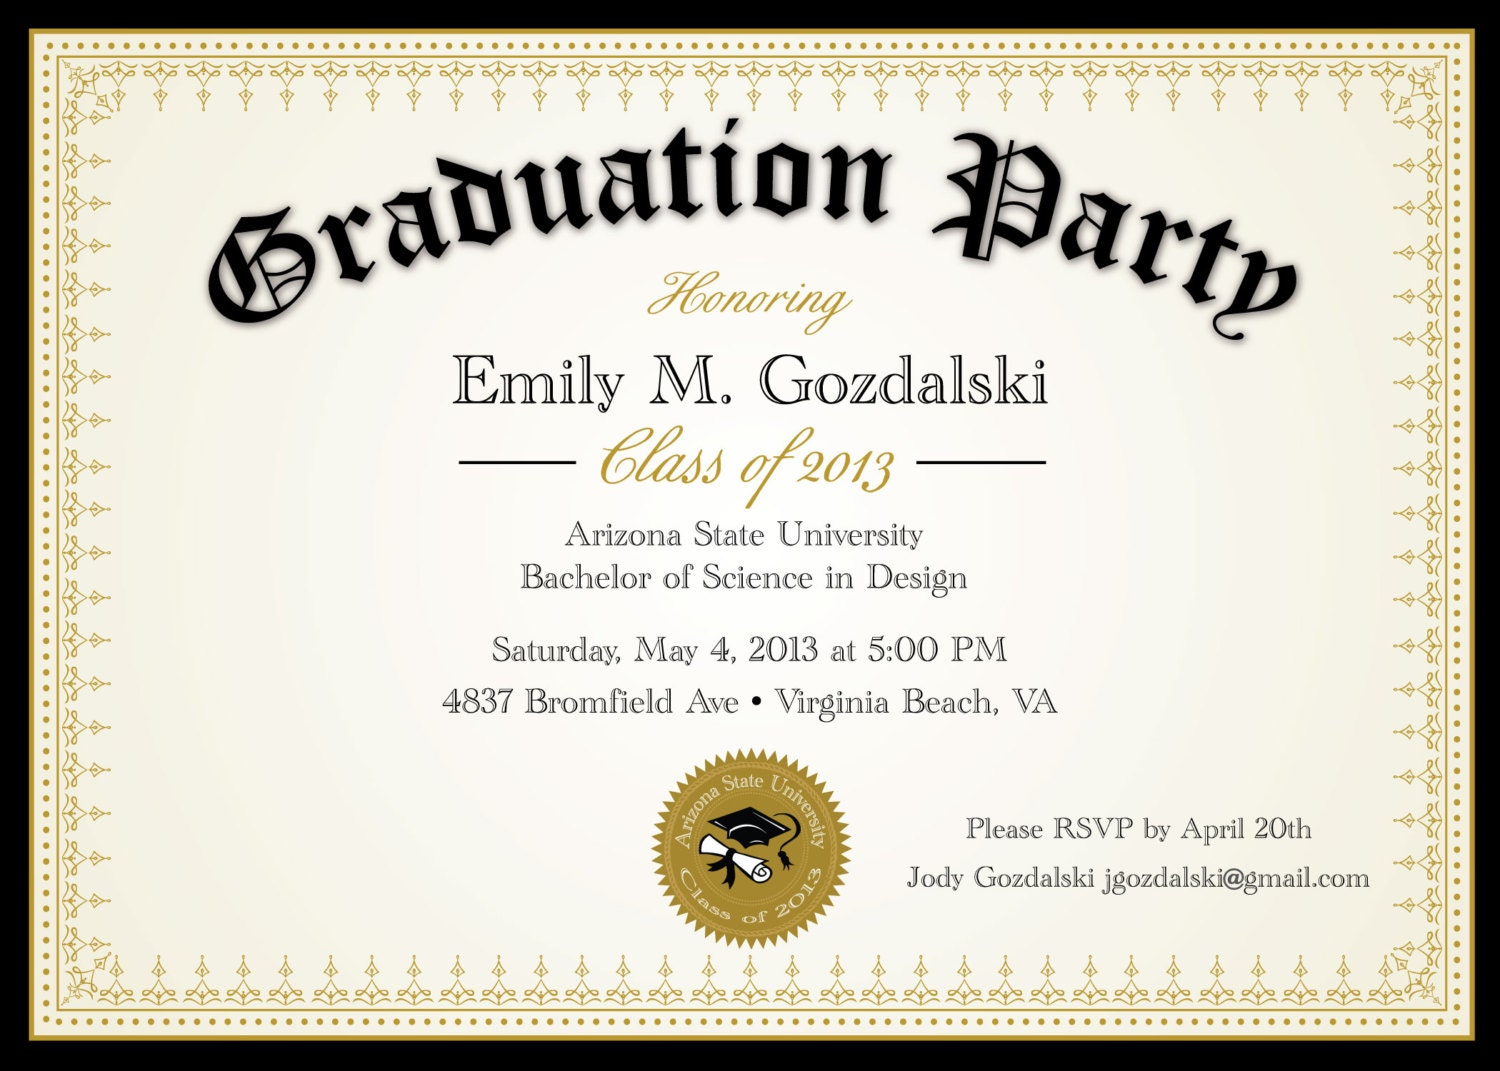 diploma graduation party invitations grad announcement, Party invitations